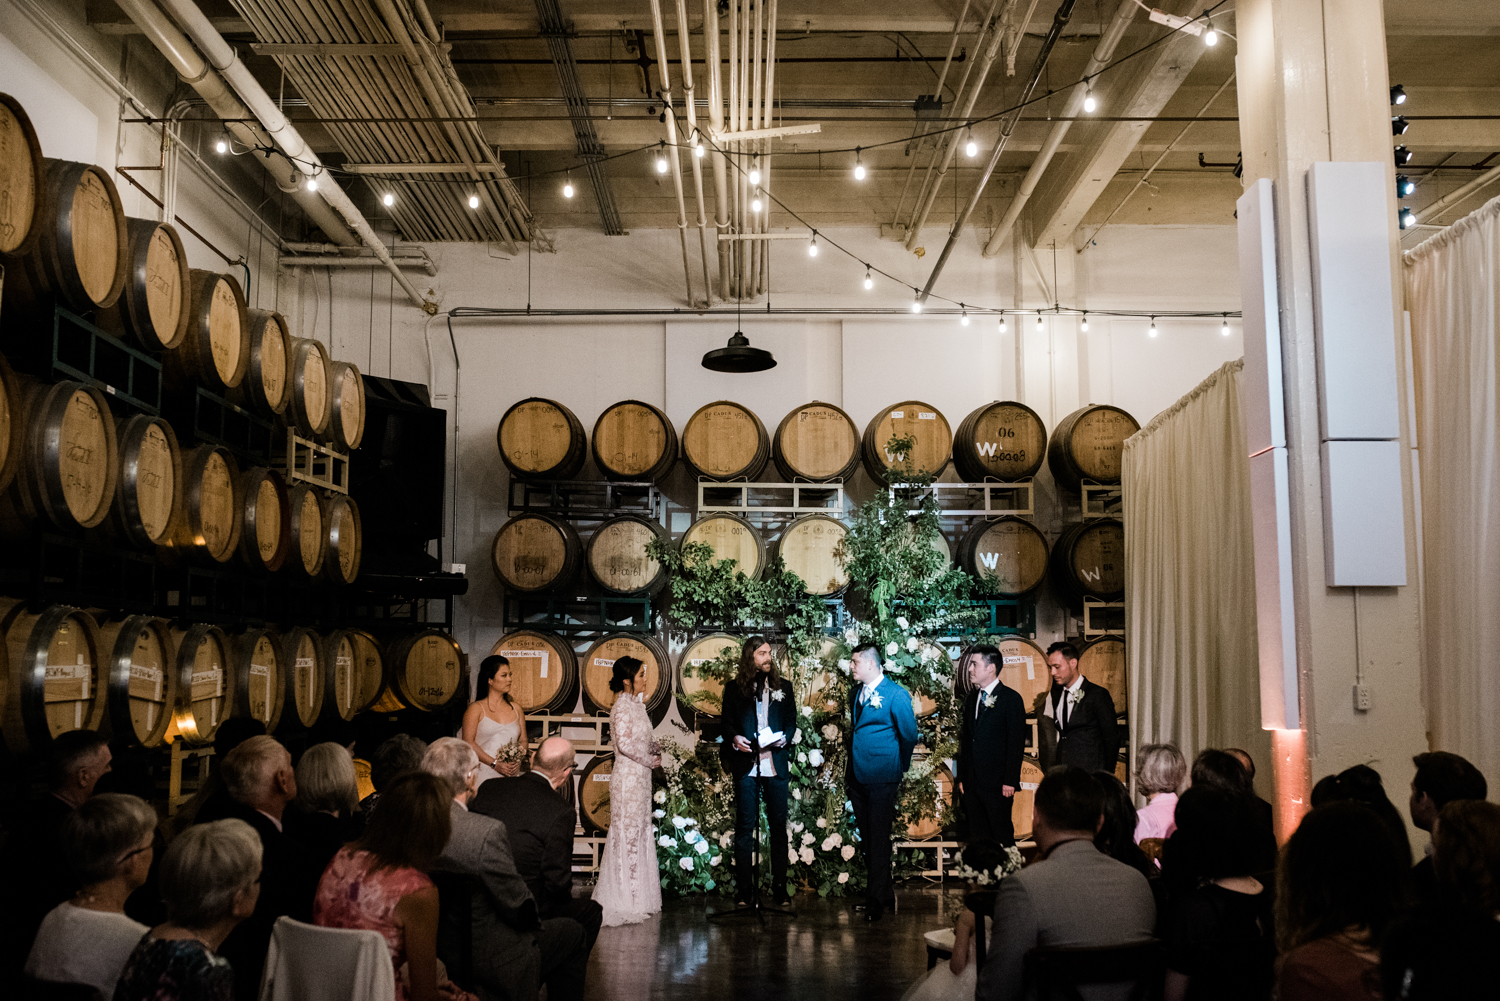 Potrero_Hill_Wine_Works_Wedding_ChristinaRichards_068.jpg